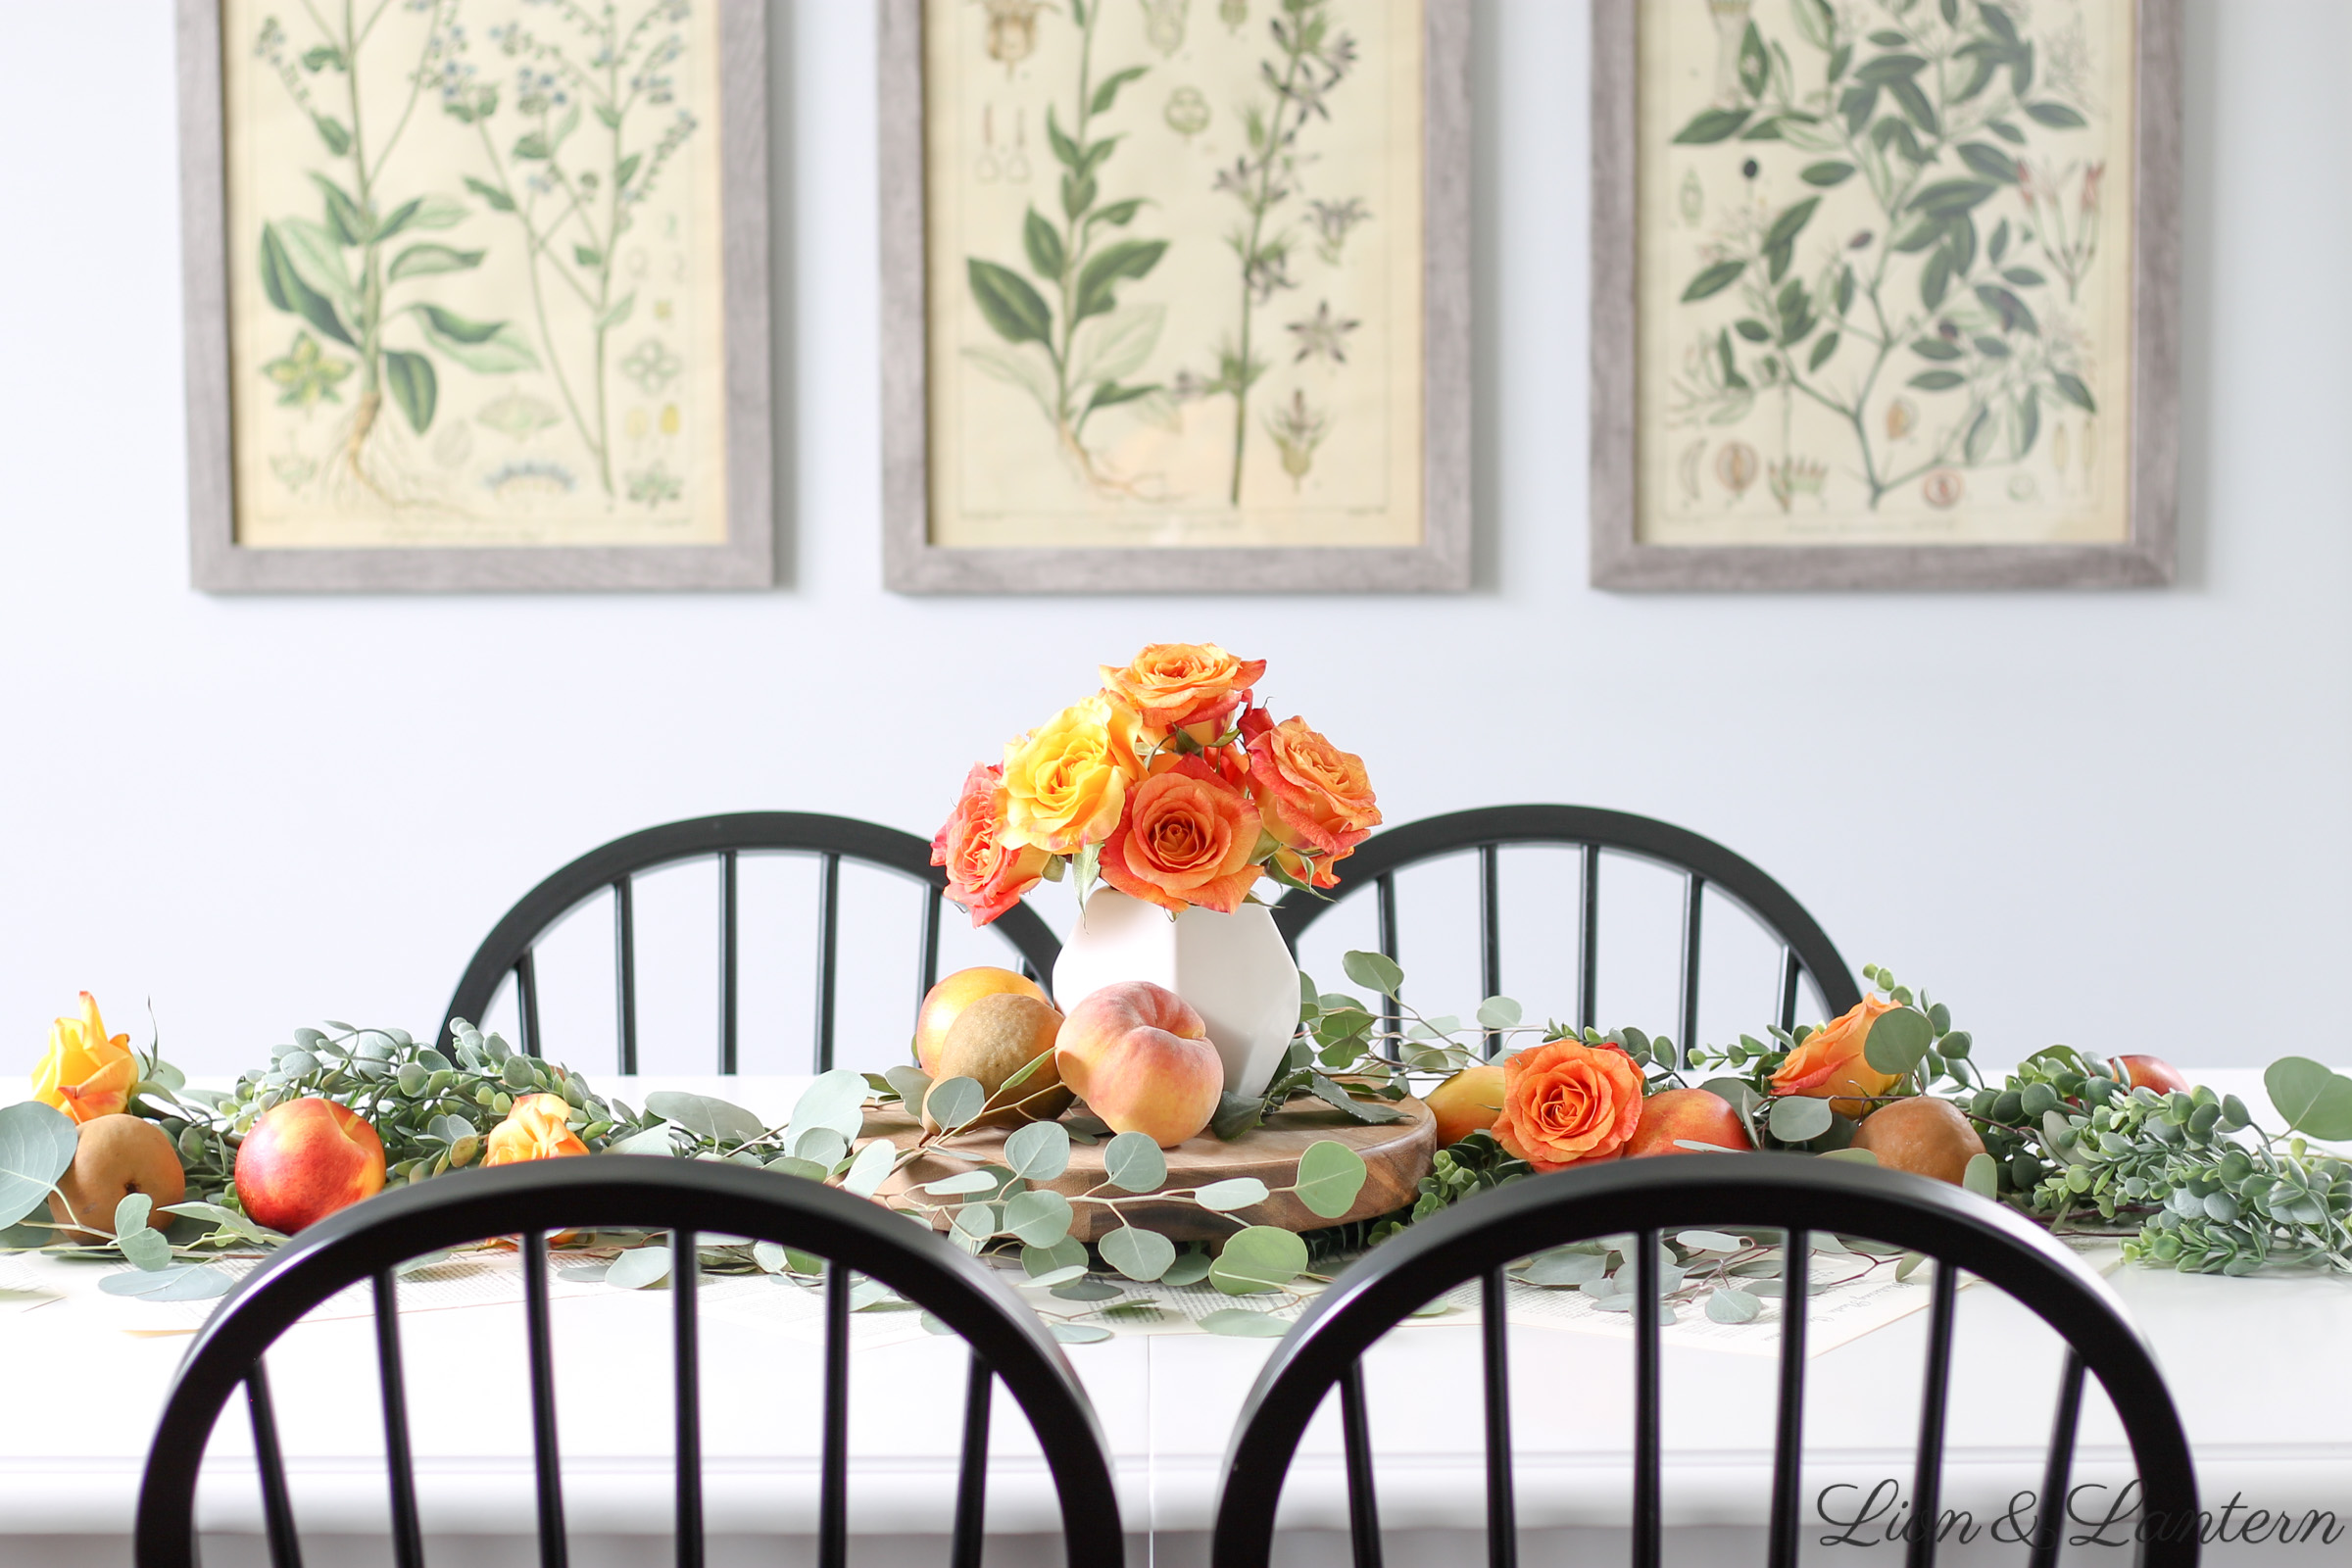 Fruit & Eucalyptus Fall Table at LionAndLantern.com | fall farmhouse decor, fall tablescape, autumn decor, peaches, pears, botanical prints